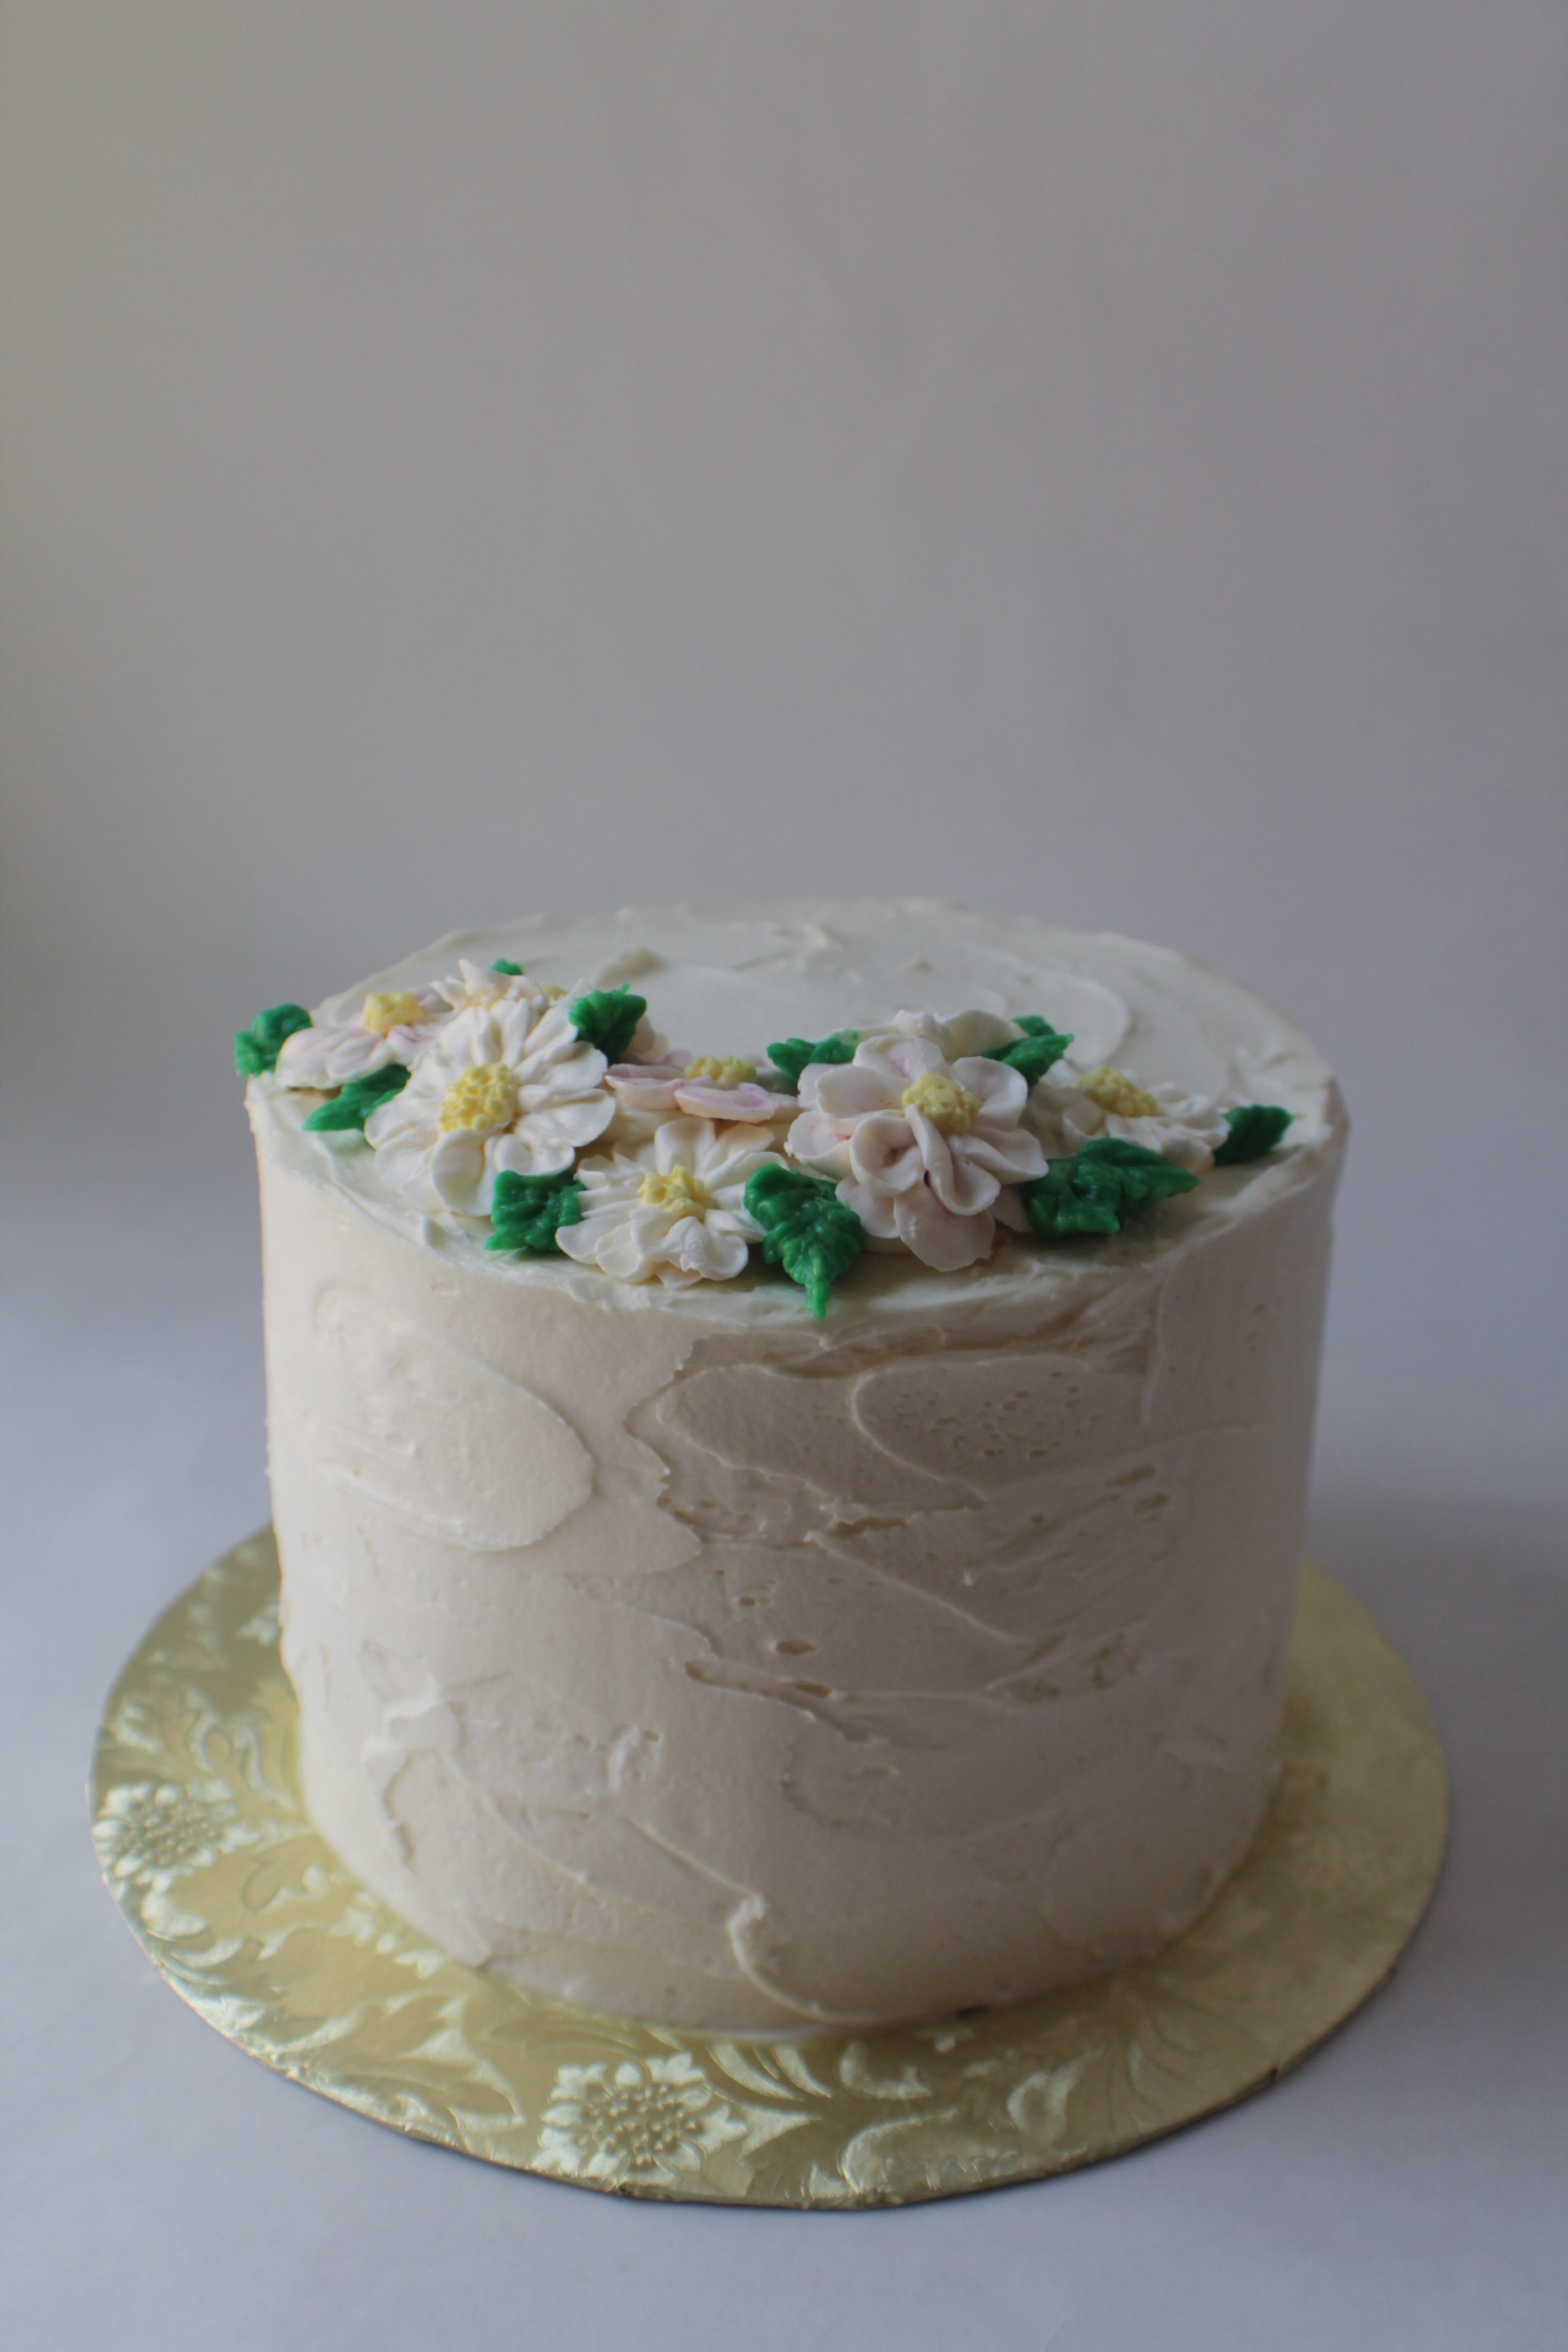 Vanilla buttercream frosted cake with buttercream daisies